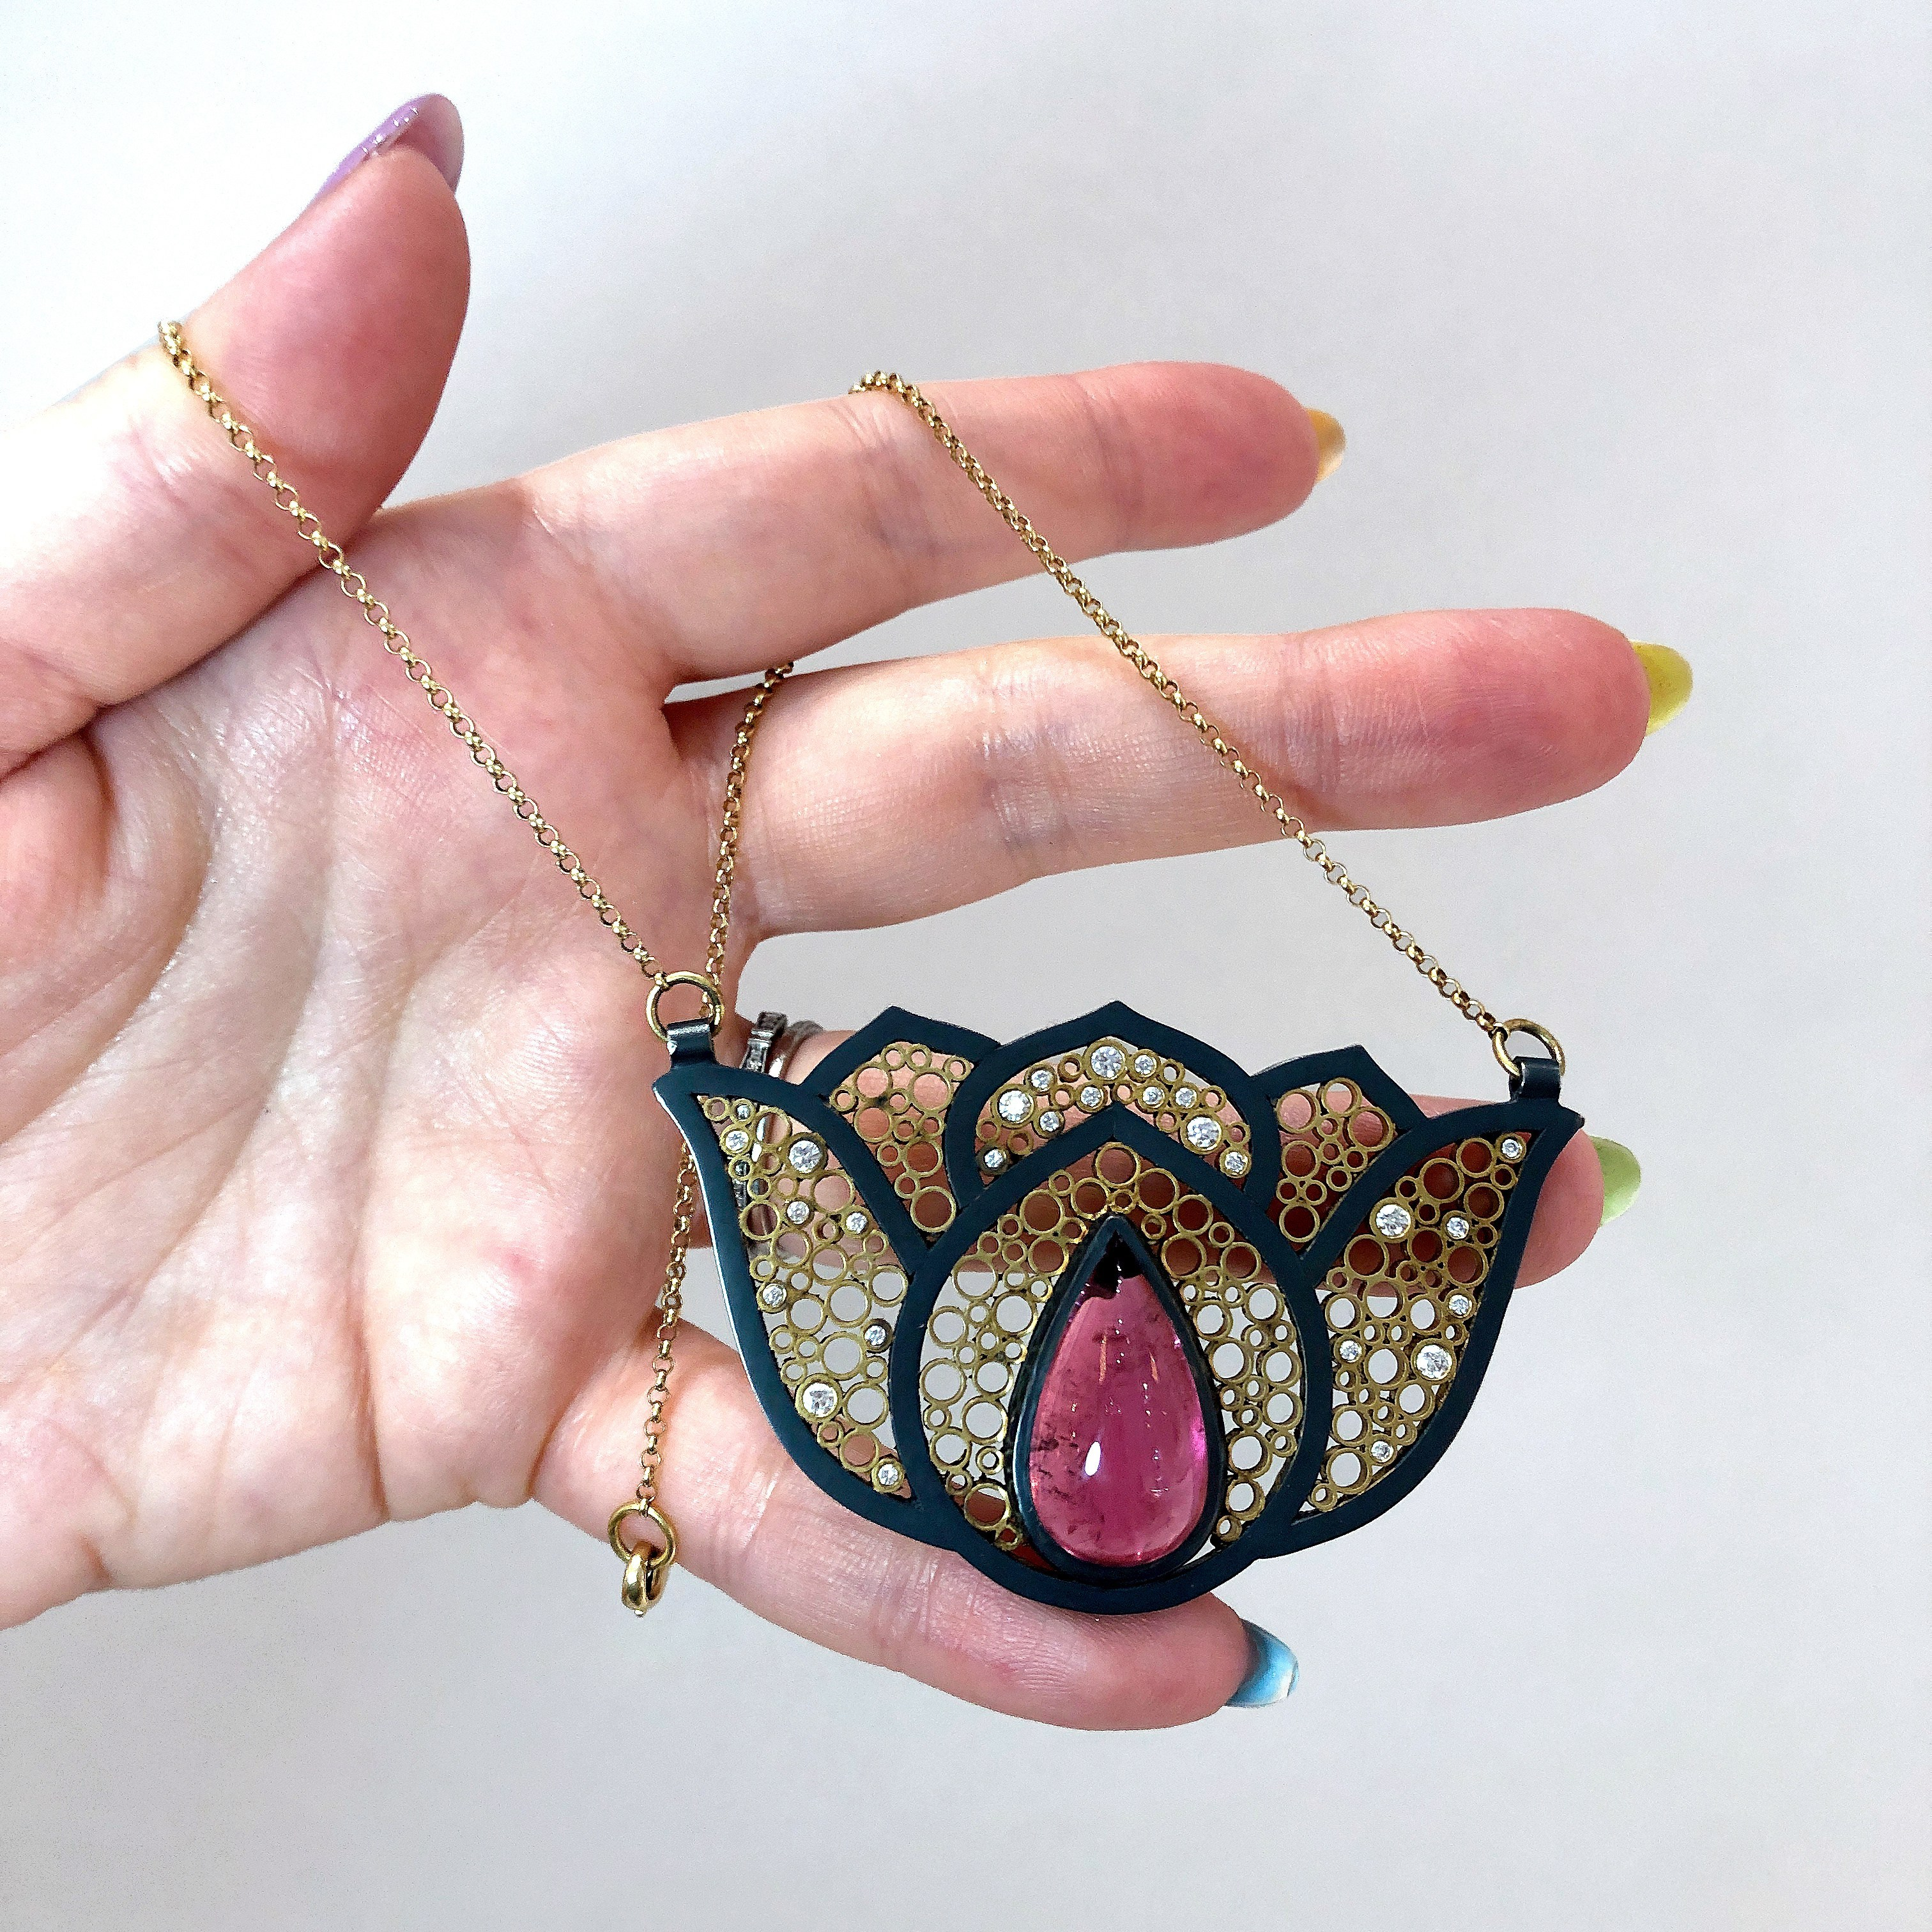 A stunning Belle Brooke Designs necklace with recycled gold and a pink tourmaline.